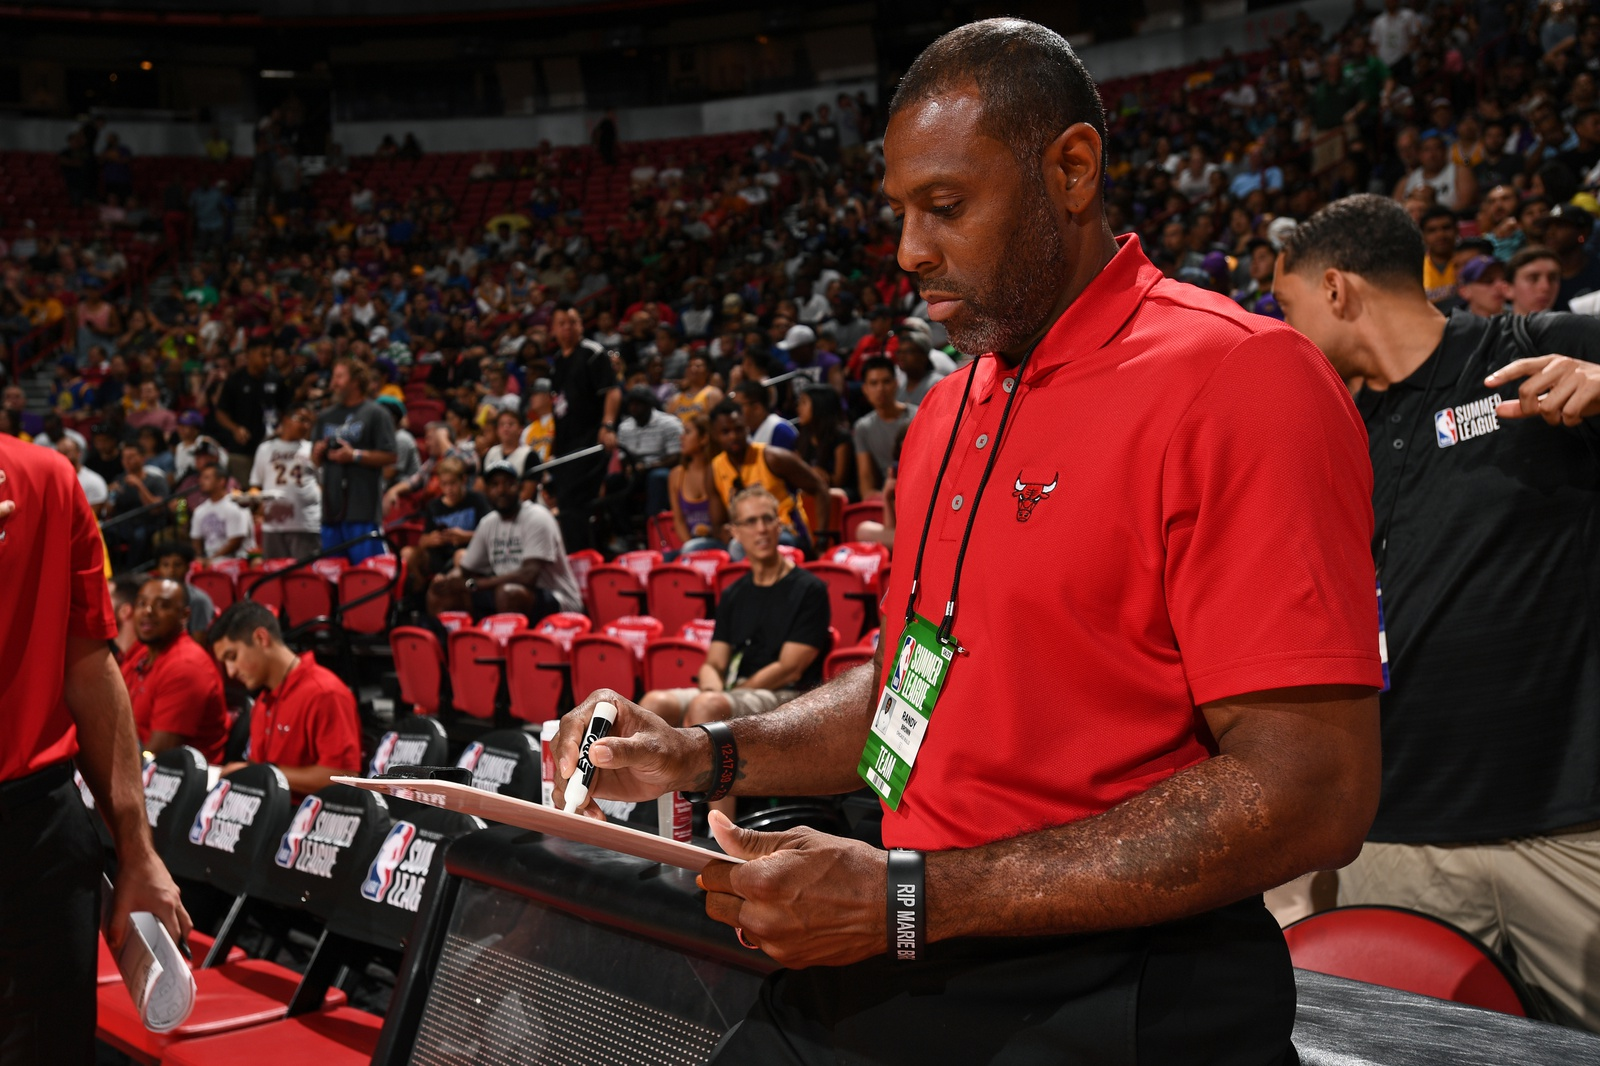 Coach Randy Brown of the Bulls writes on his clipboard during a game against the Dallas Mavericks on July 8, 2017 at the Thomas & Mack Center in Las Vegas, Nevada.